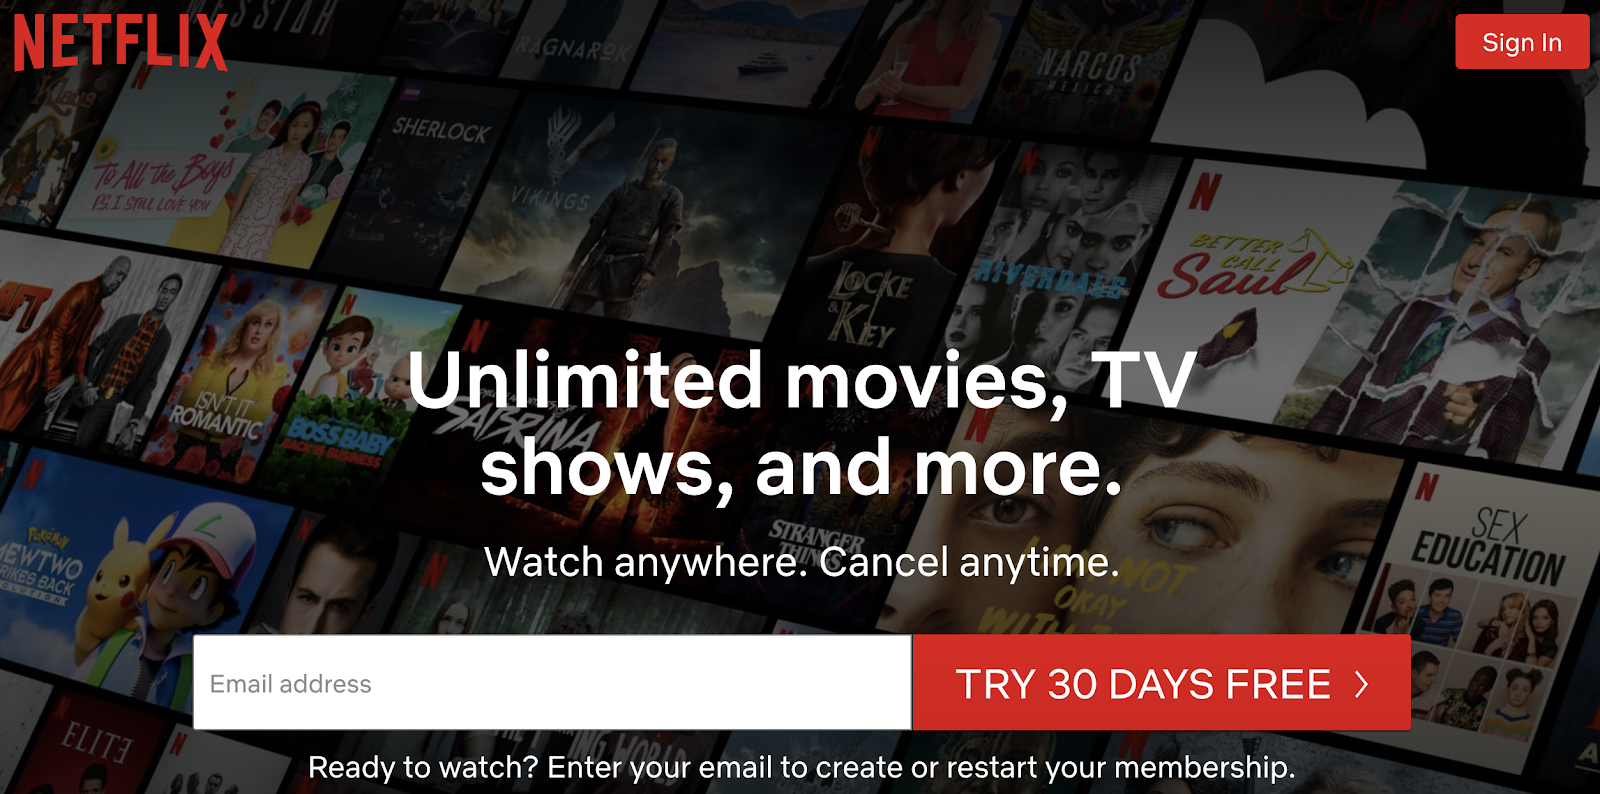 Netflix free trial example